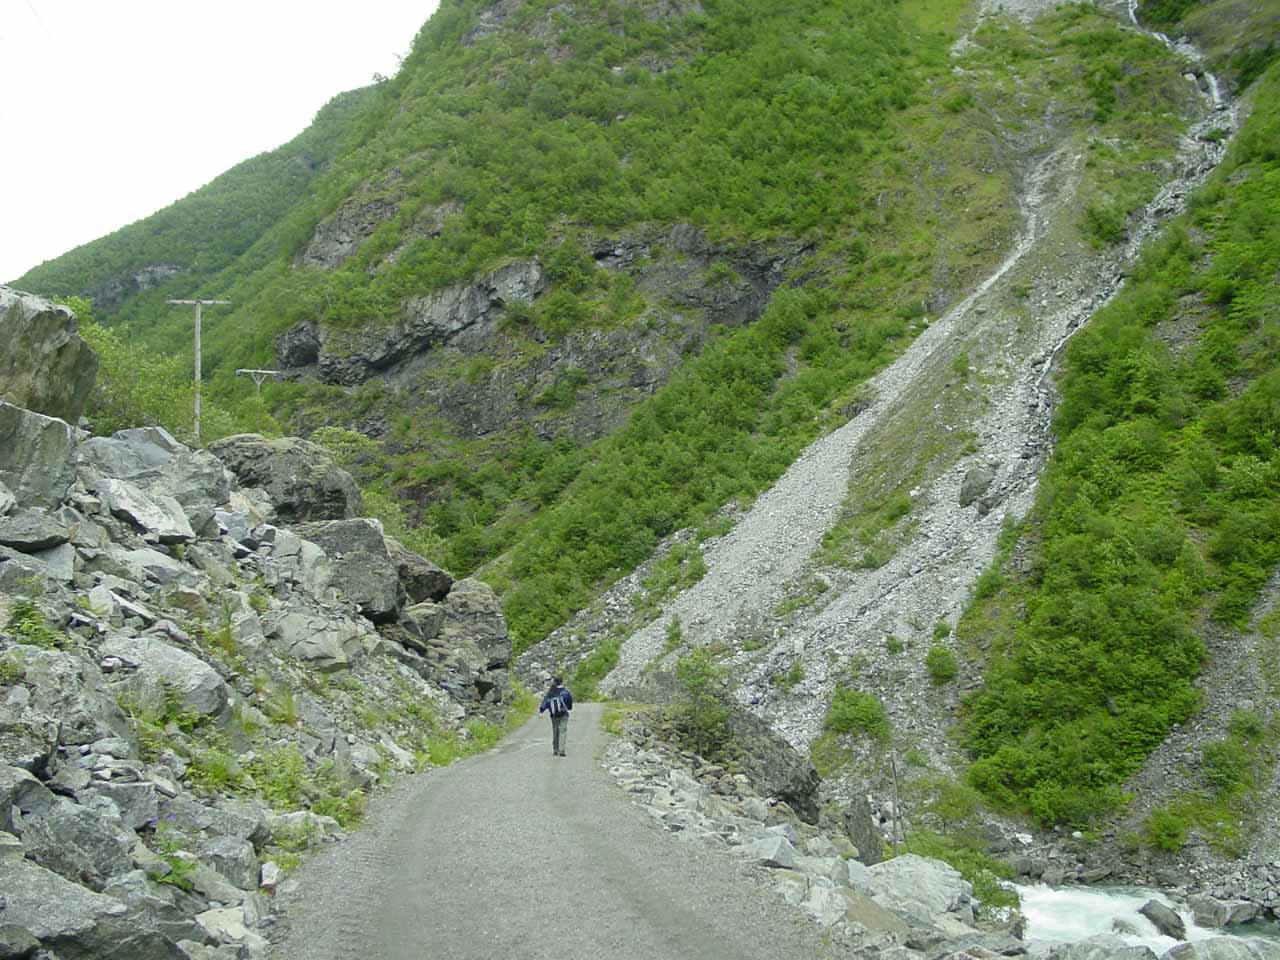 Beyond Avdalsfossen, we then entered a rockfall-prone section of track